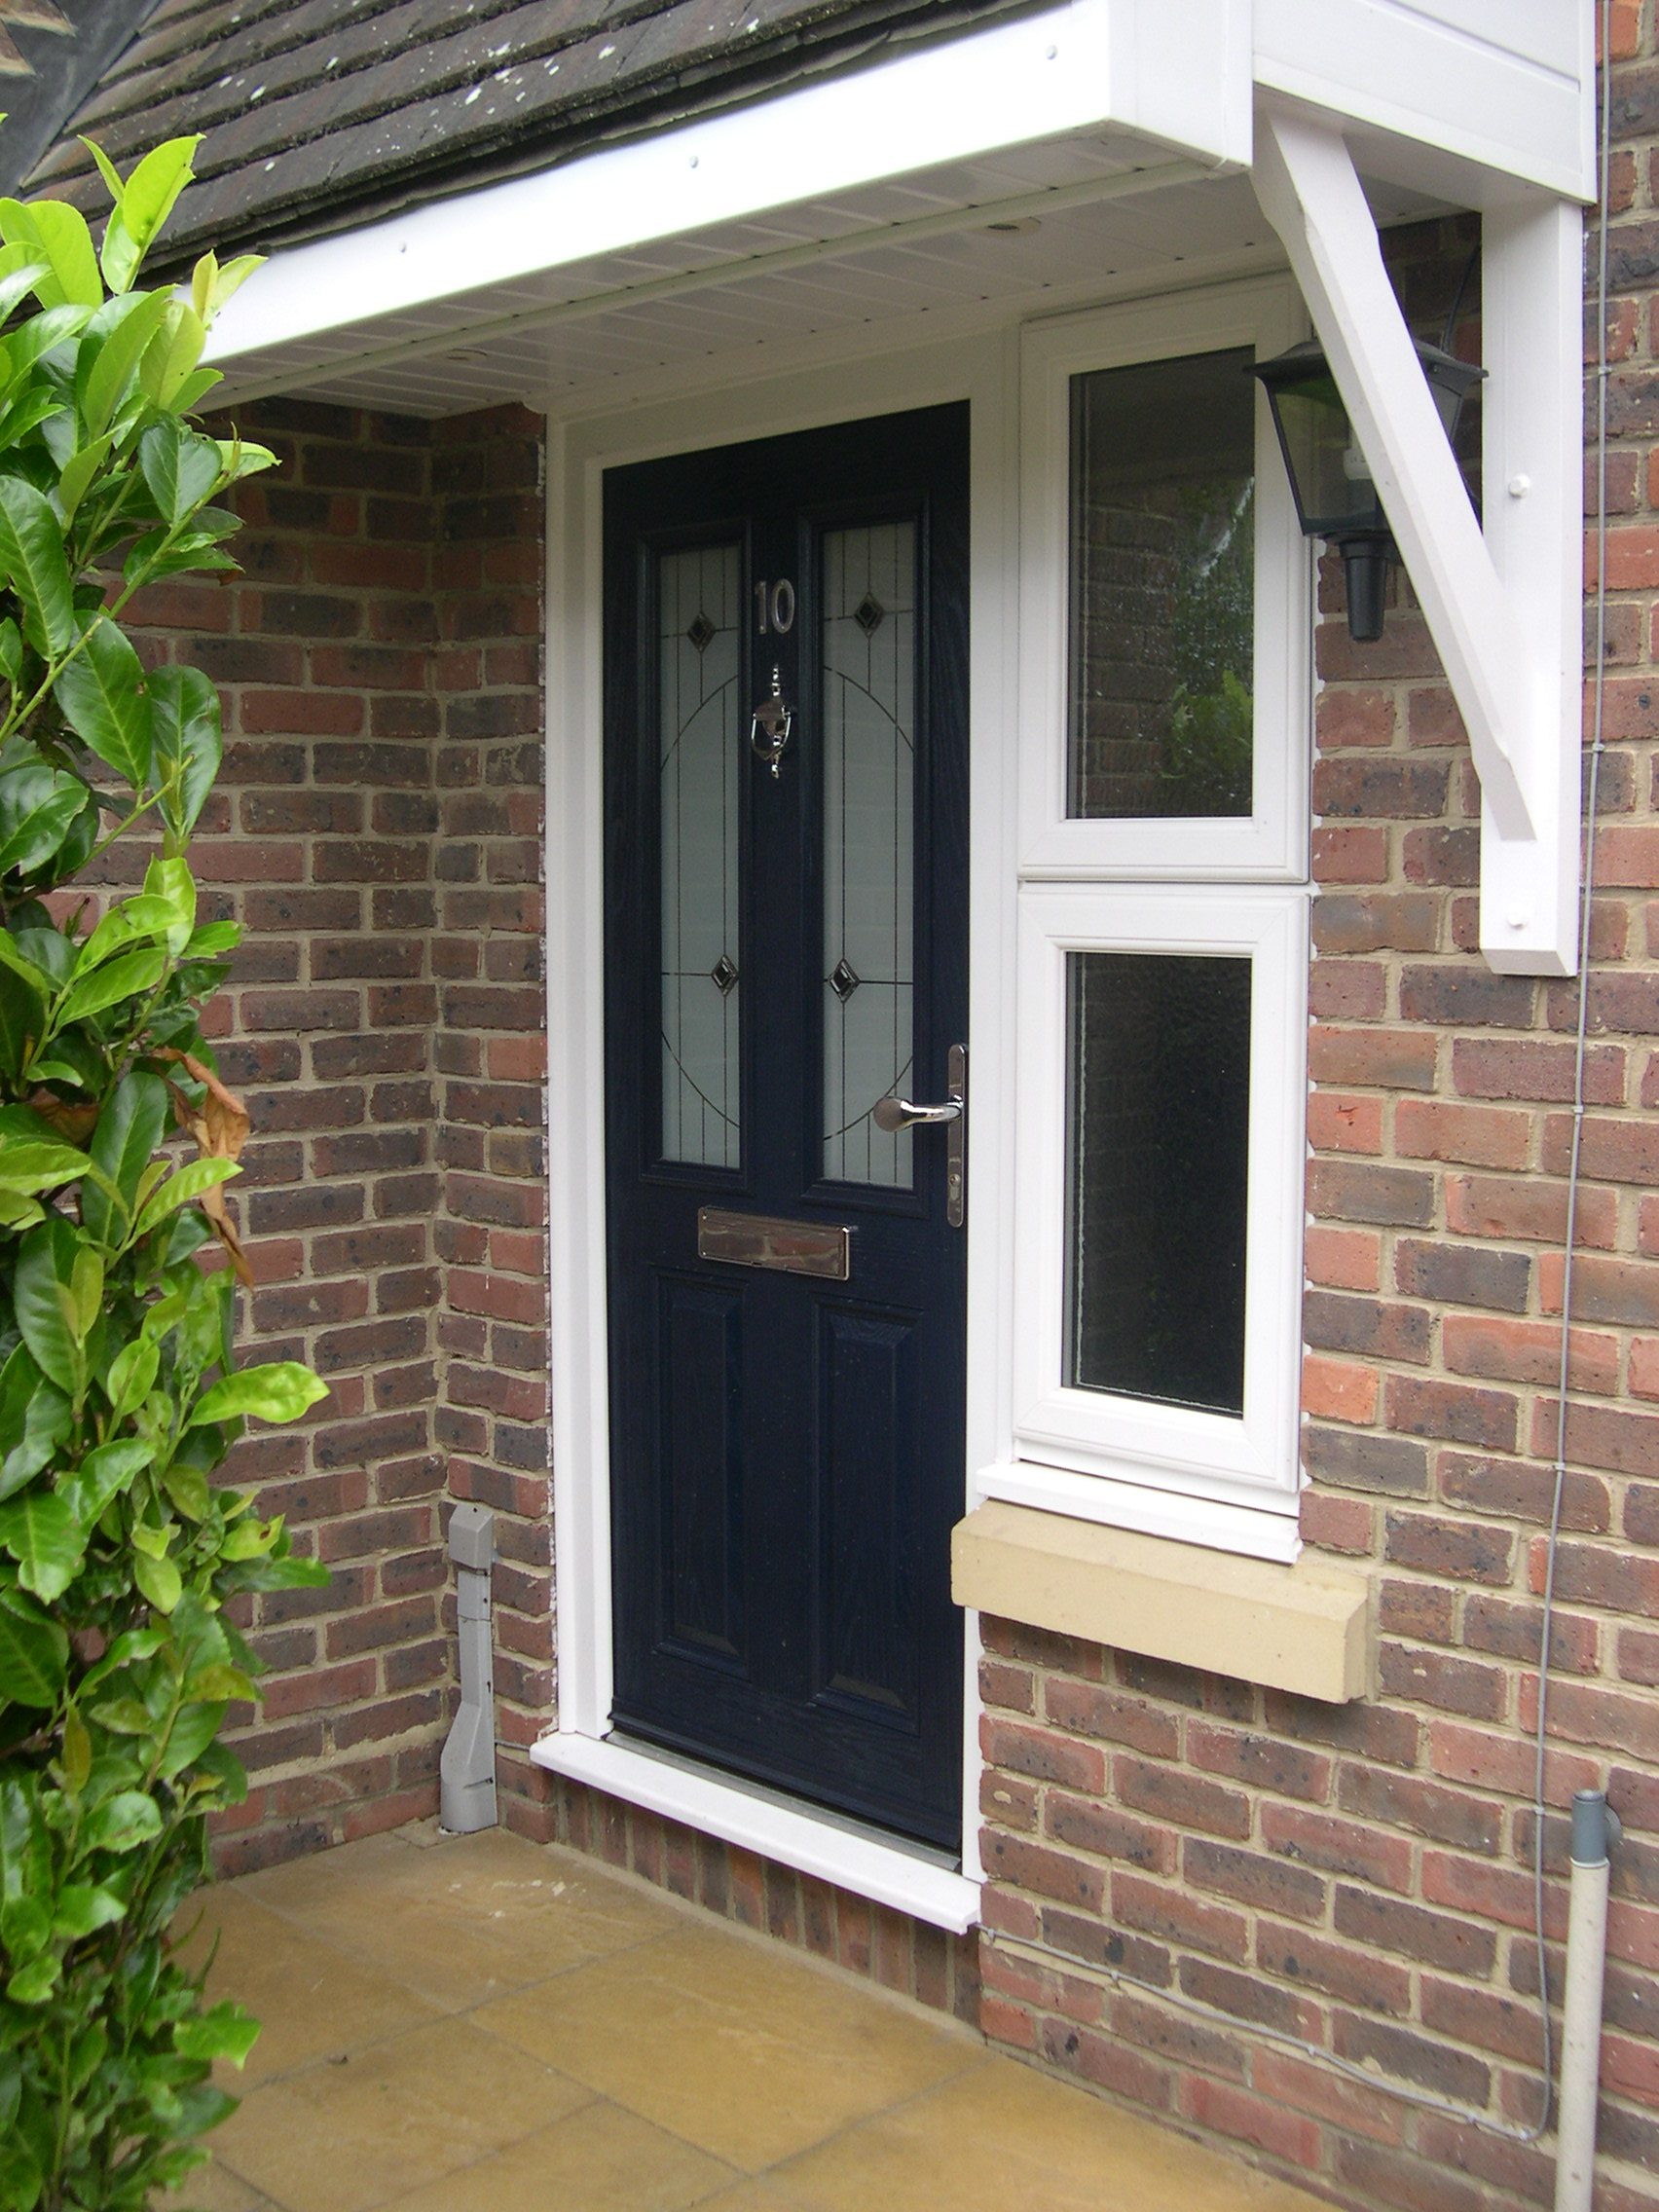 new composite door porch jcs external solutions